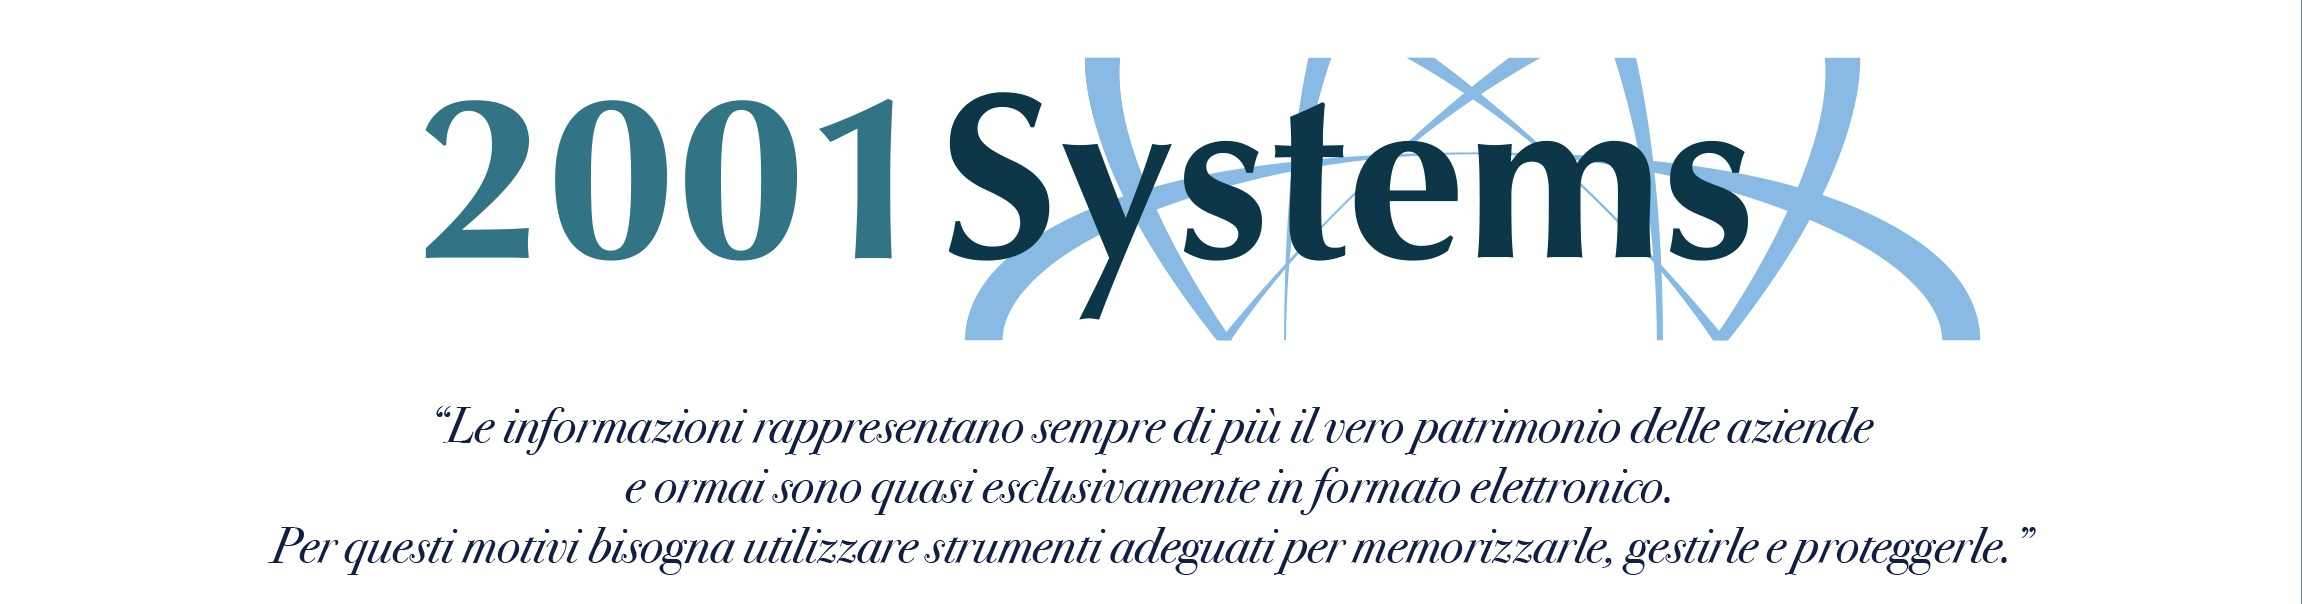 2001systems - sicurezza informatica, assistenza sistemistica, cyber security, GDPR, privacy